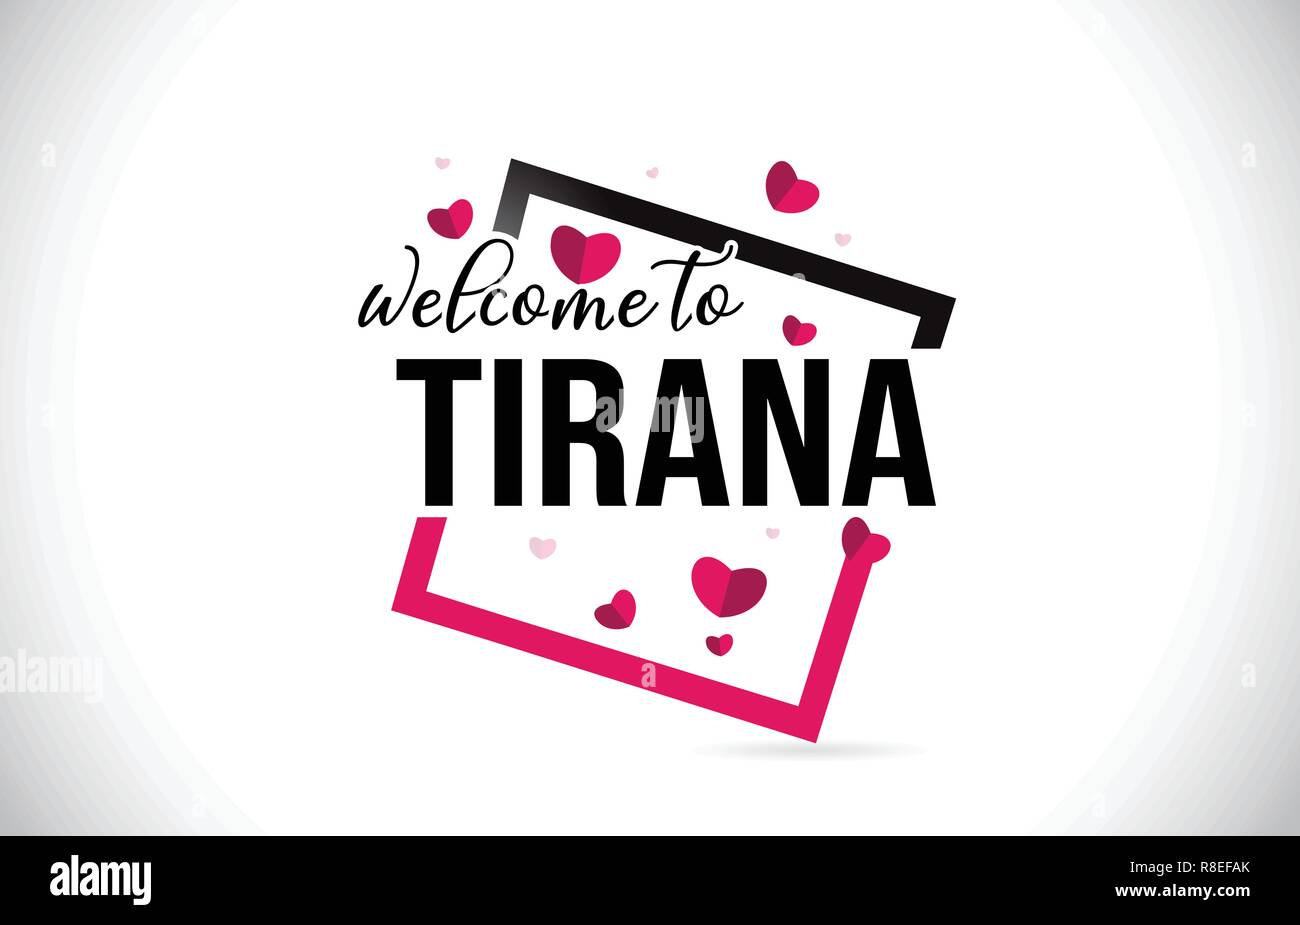 Tirana Welcome To Word Text with Handwritten Font and  Red Hearts Square Design Illustration Vector. - Stock Vector